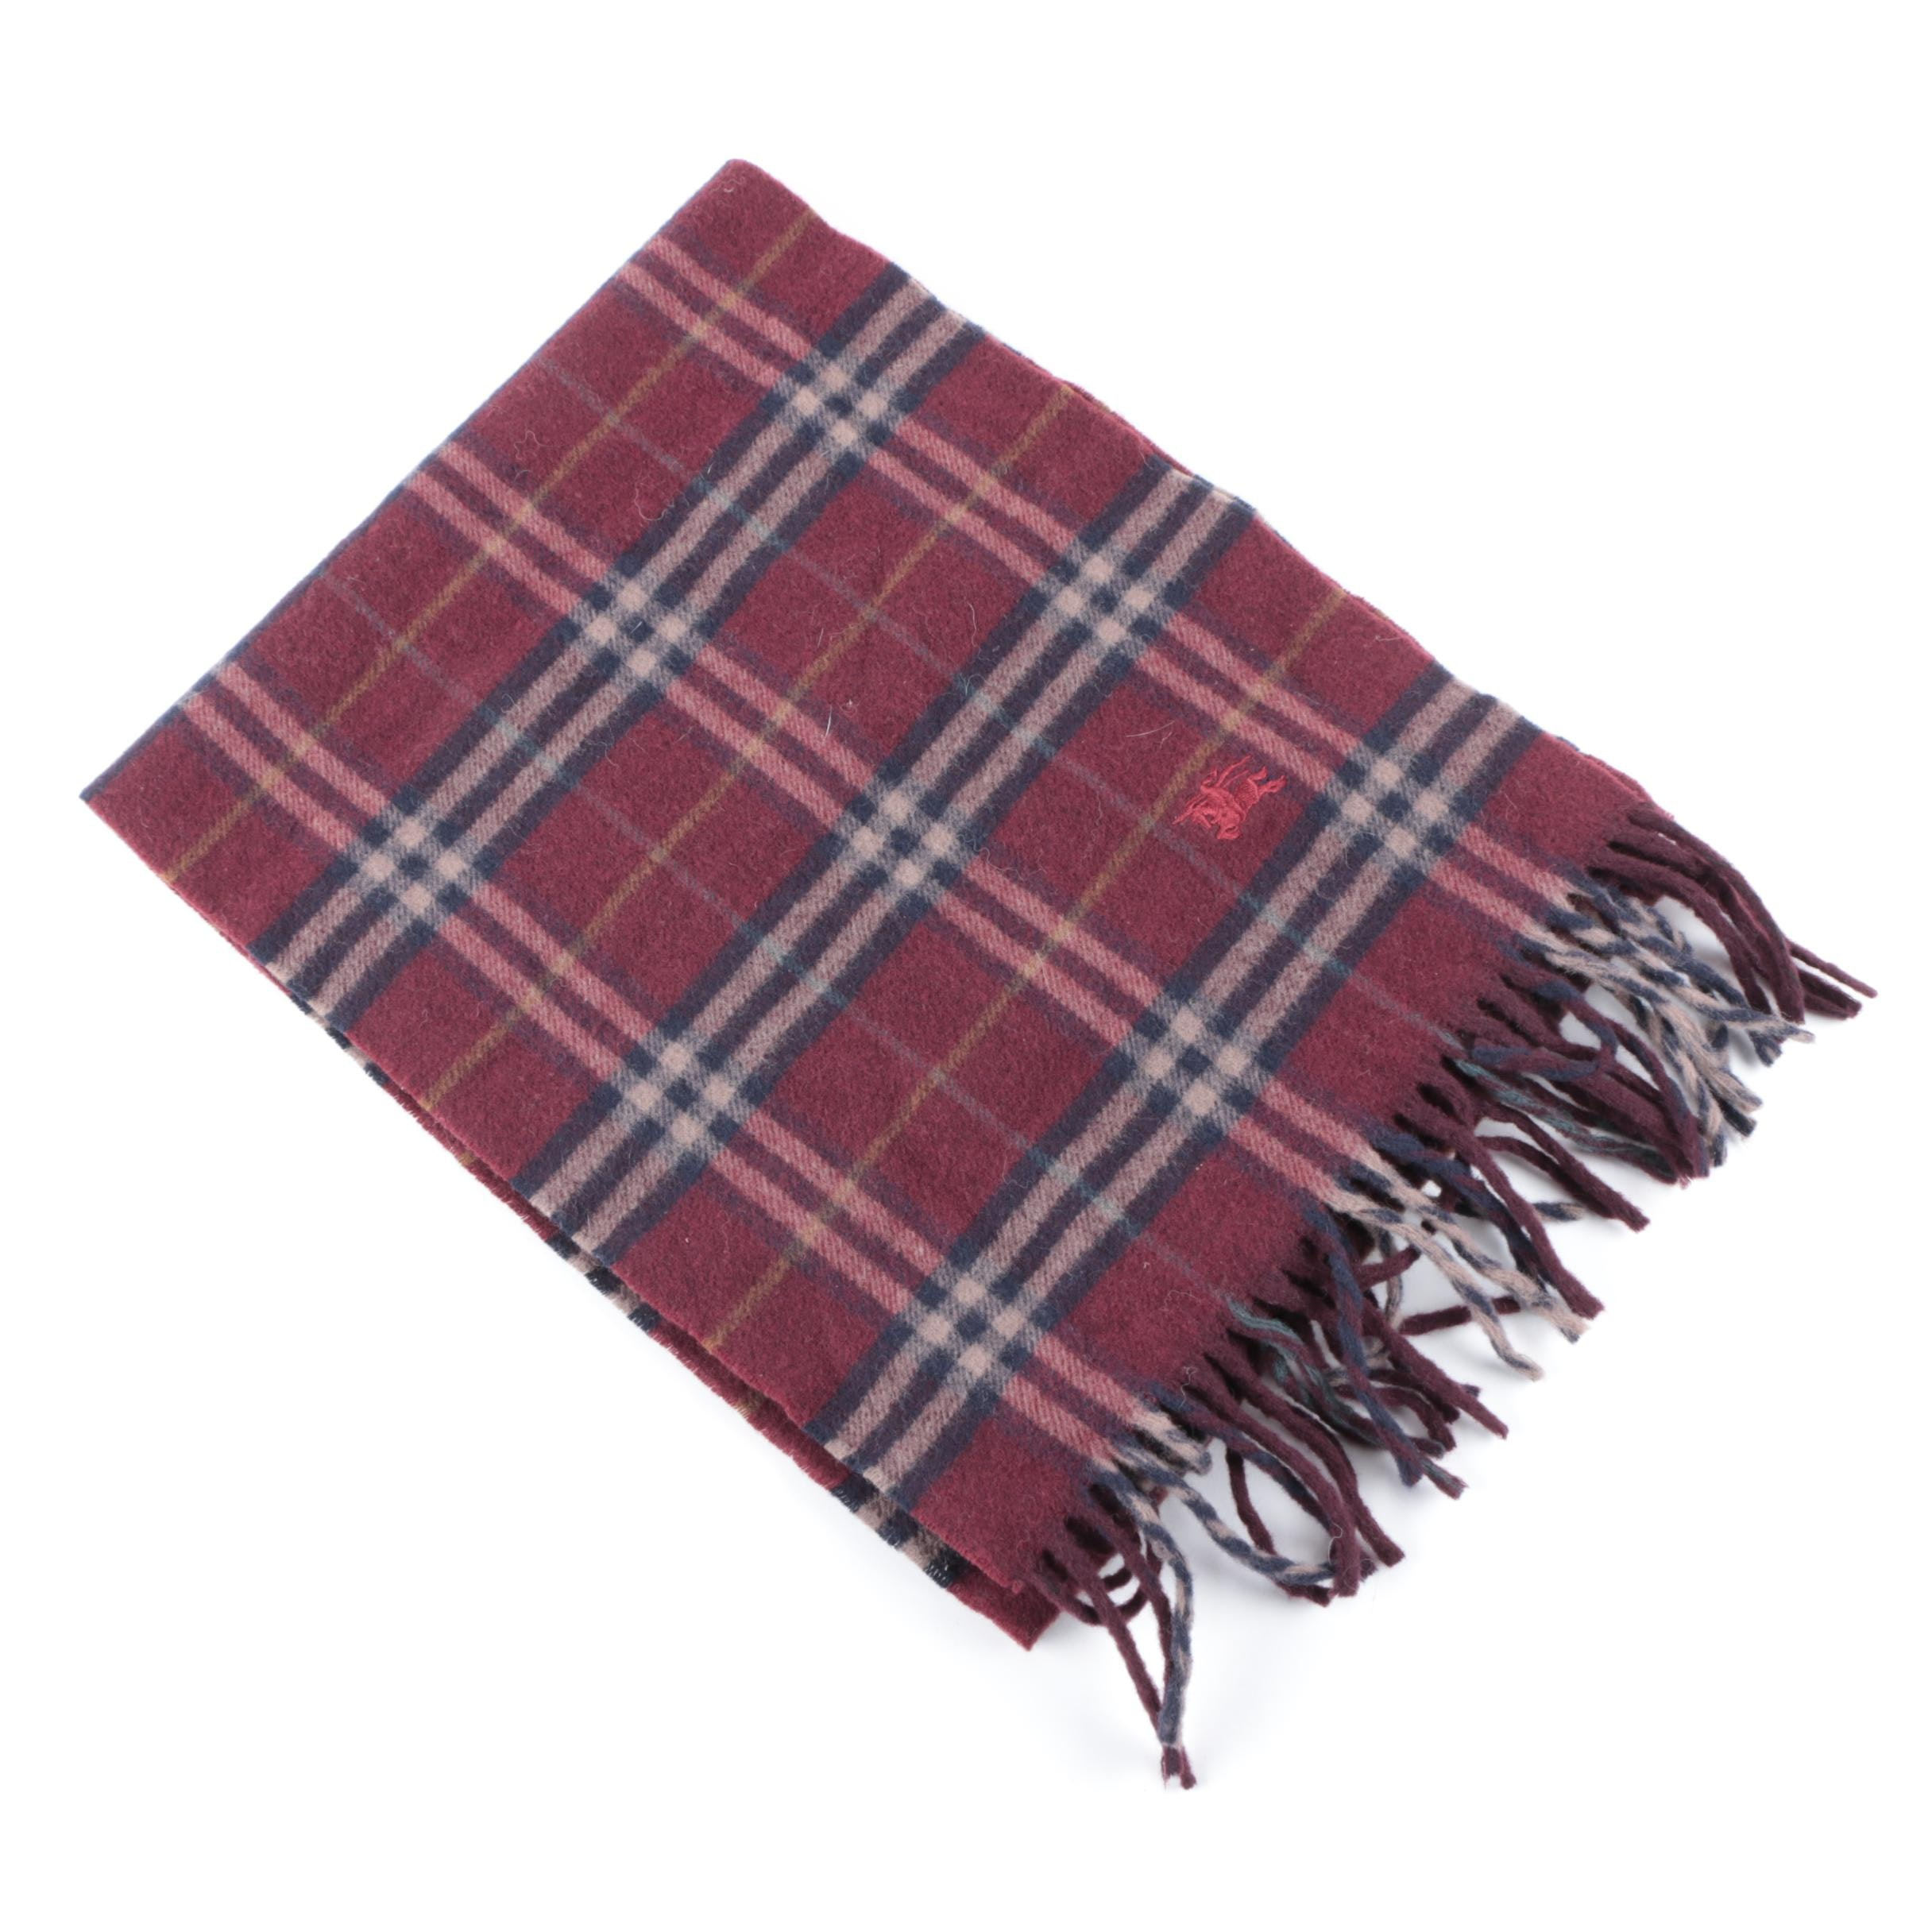 Burberry Red and Navy Plaid Wool Scarf